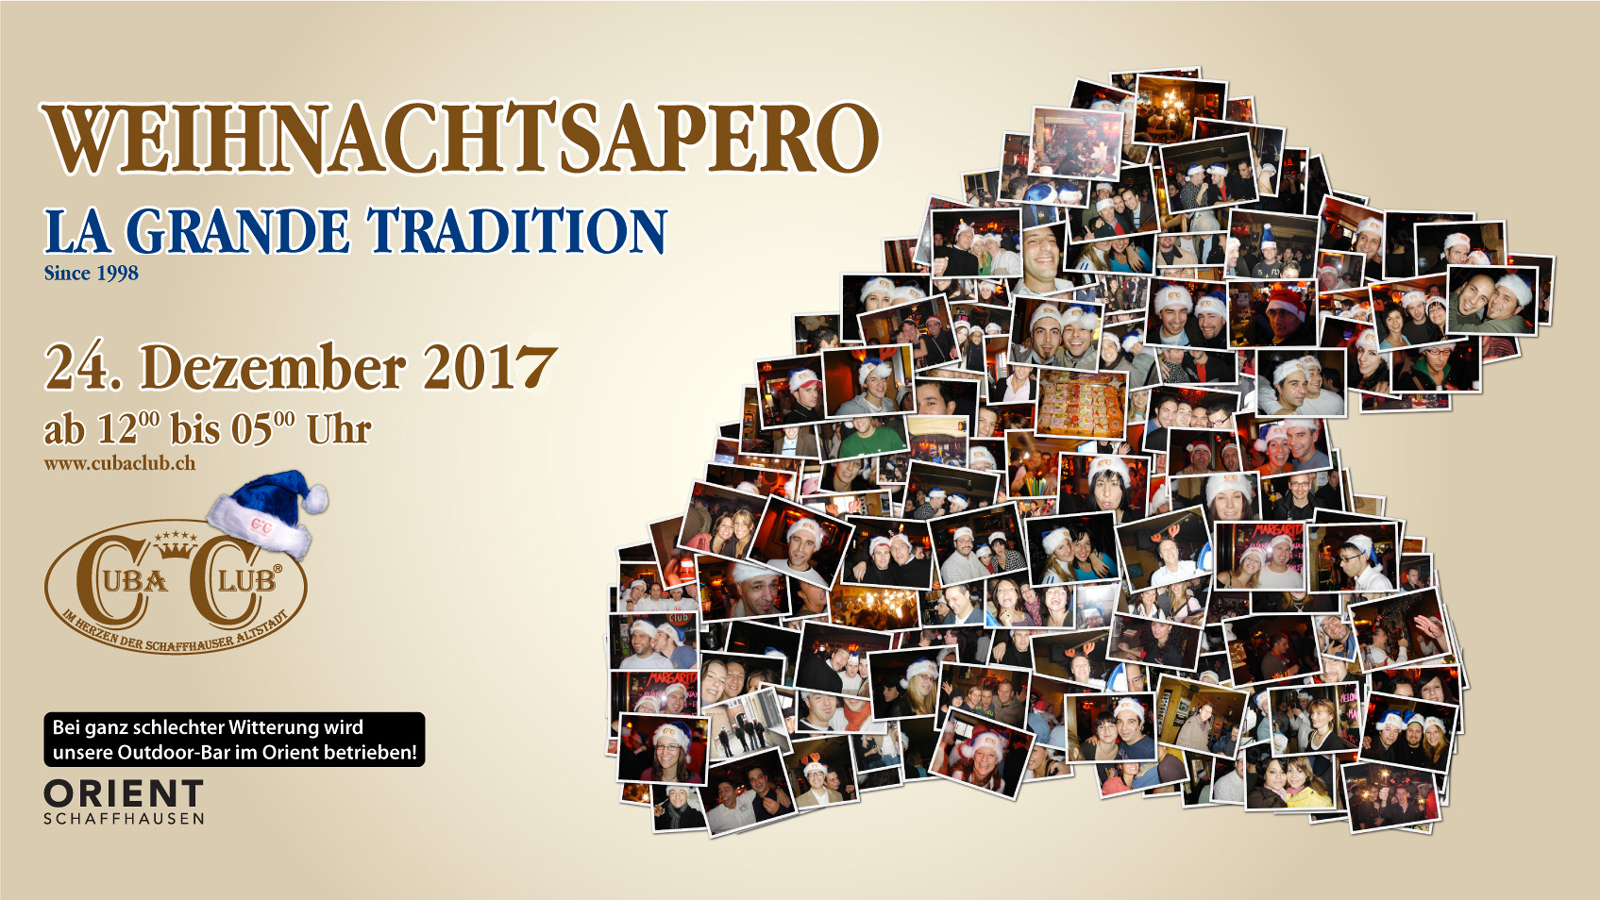 Weihnachtsapero 2017 Day Party